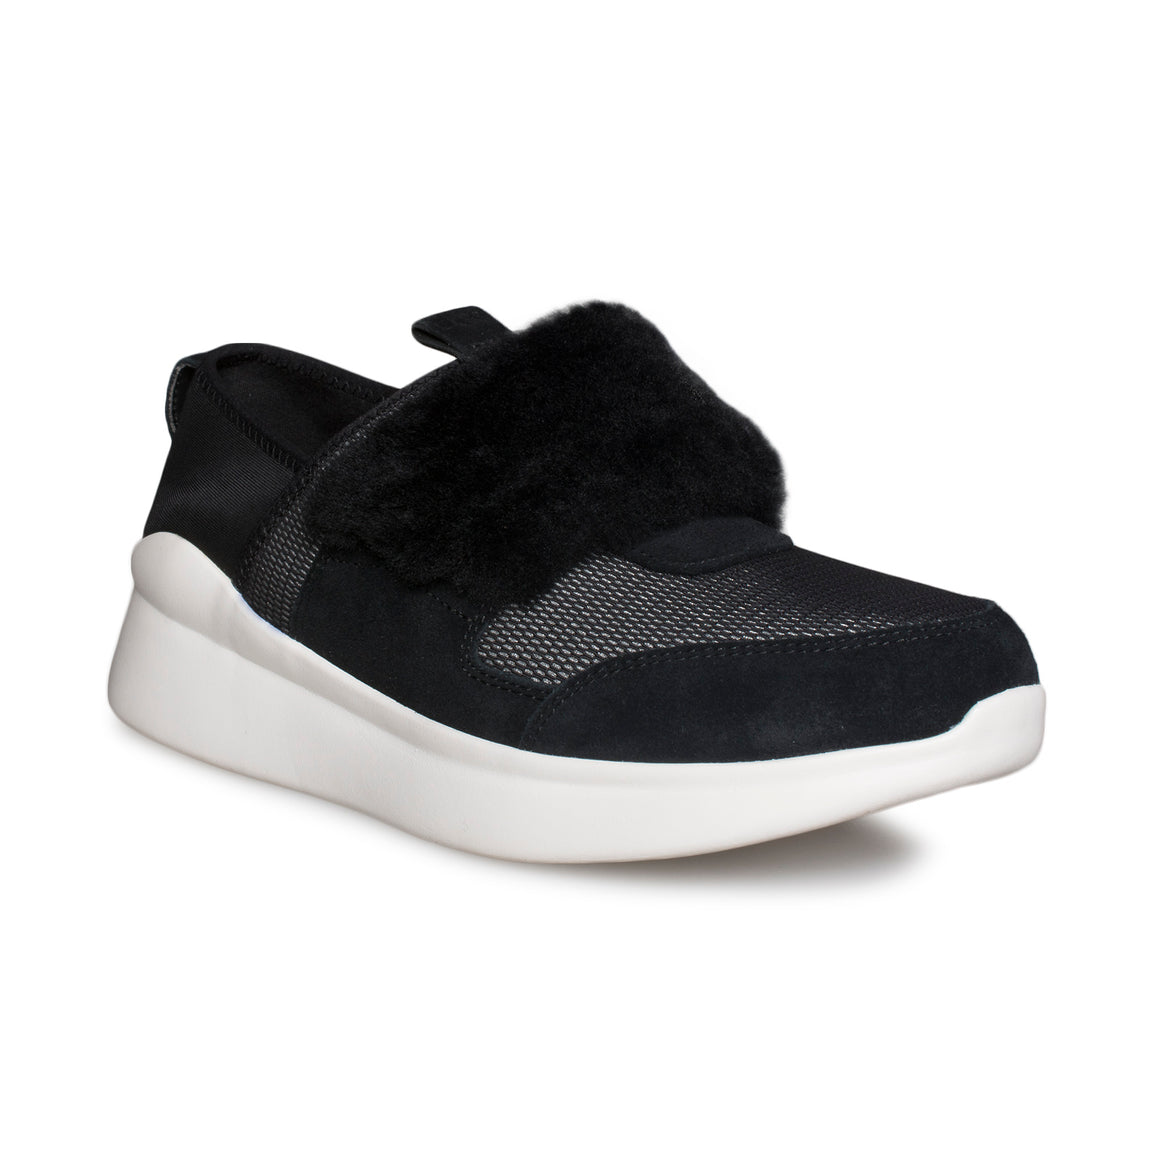 UGG Pico Black Shoes - Women's